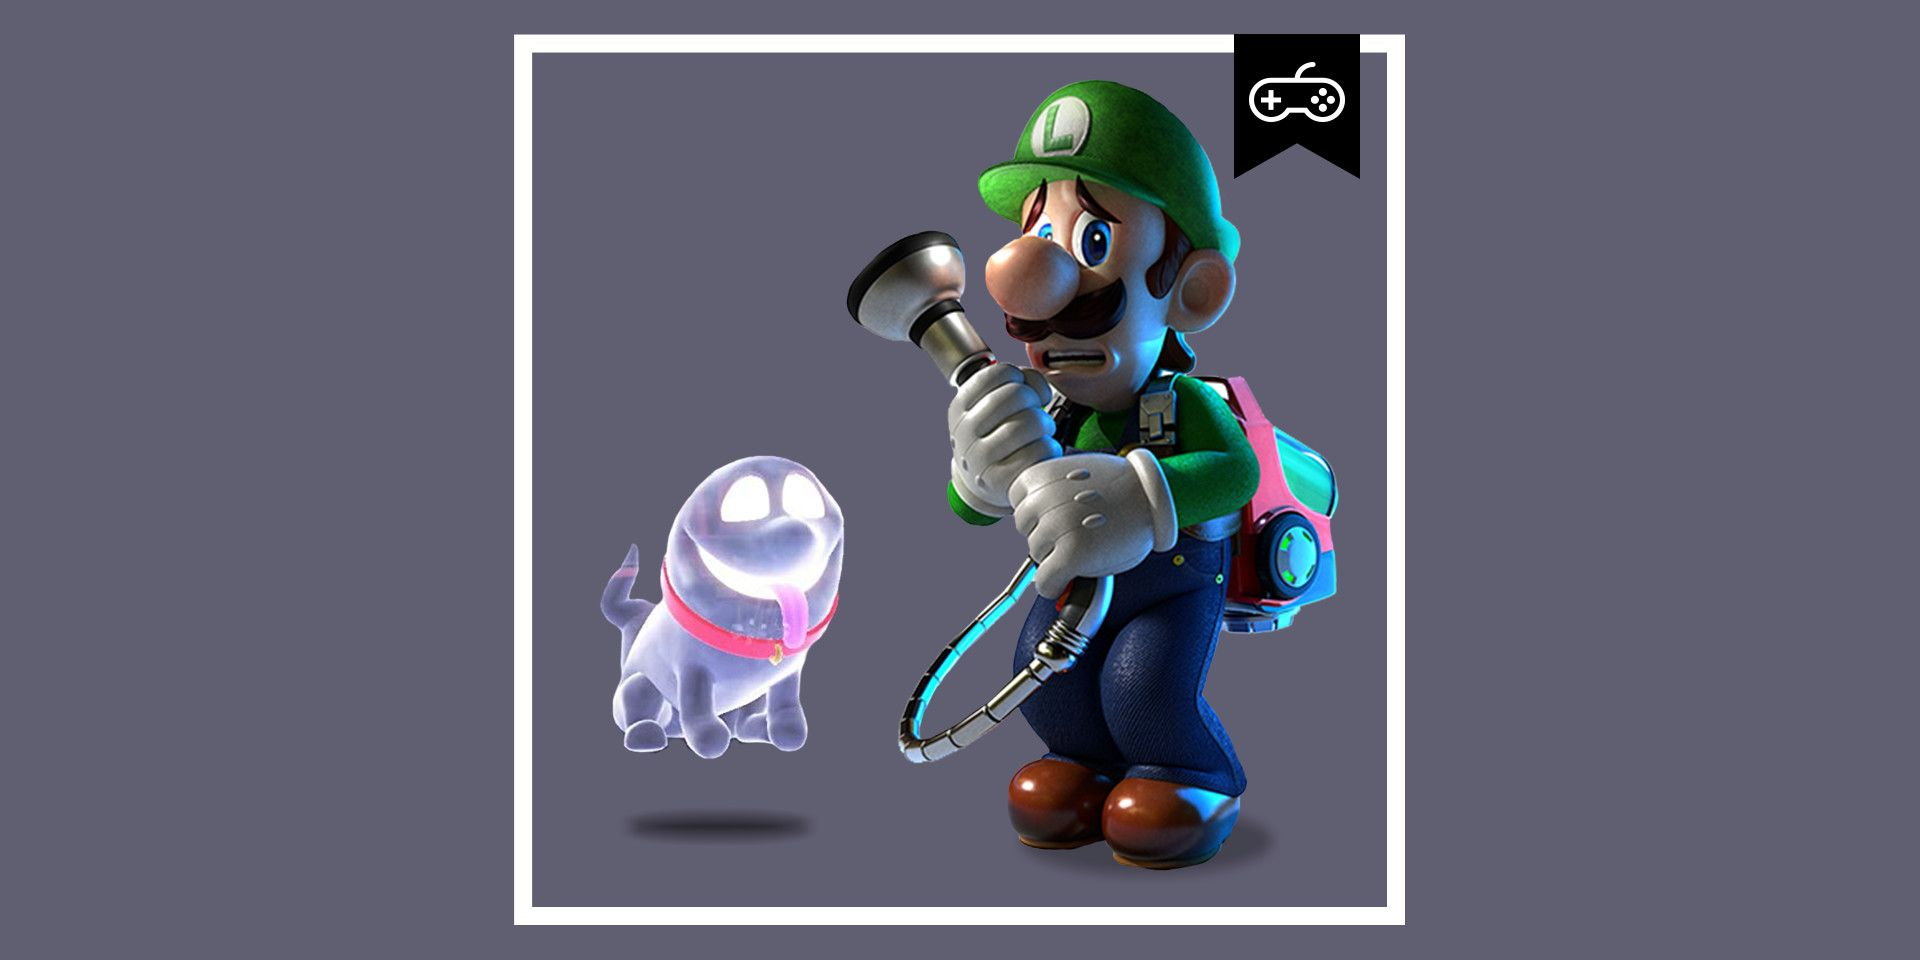 Luigi's Mansion 3 Is...Almost Too Scary for a Video Game?